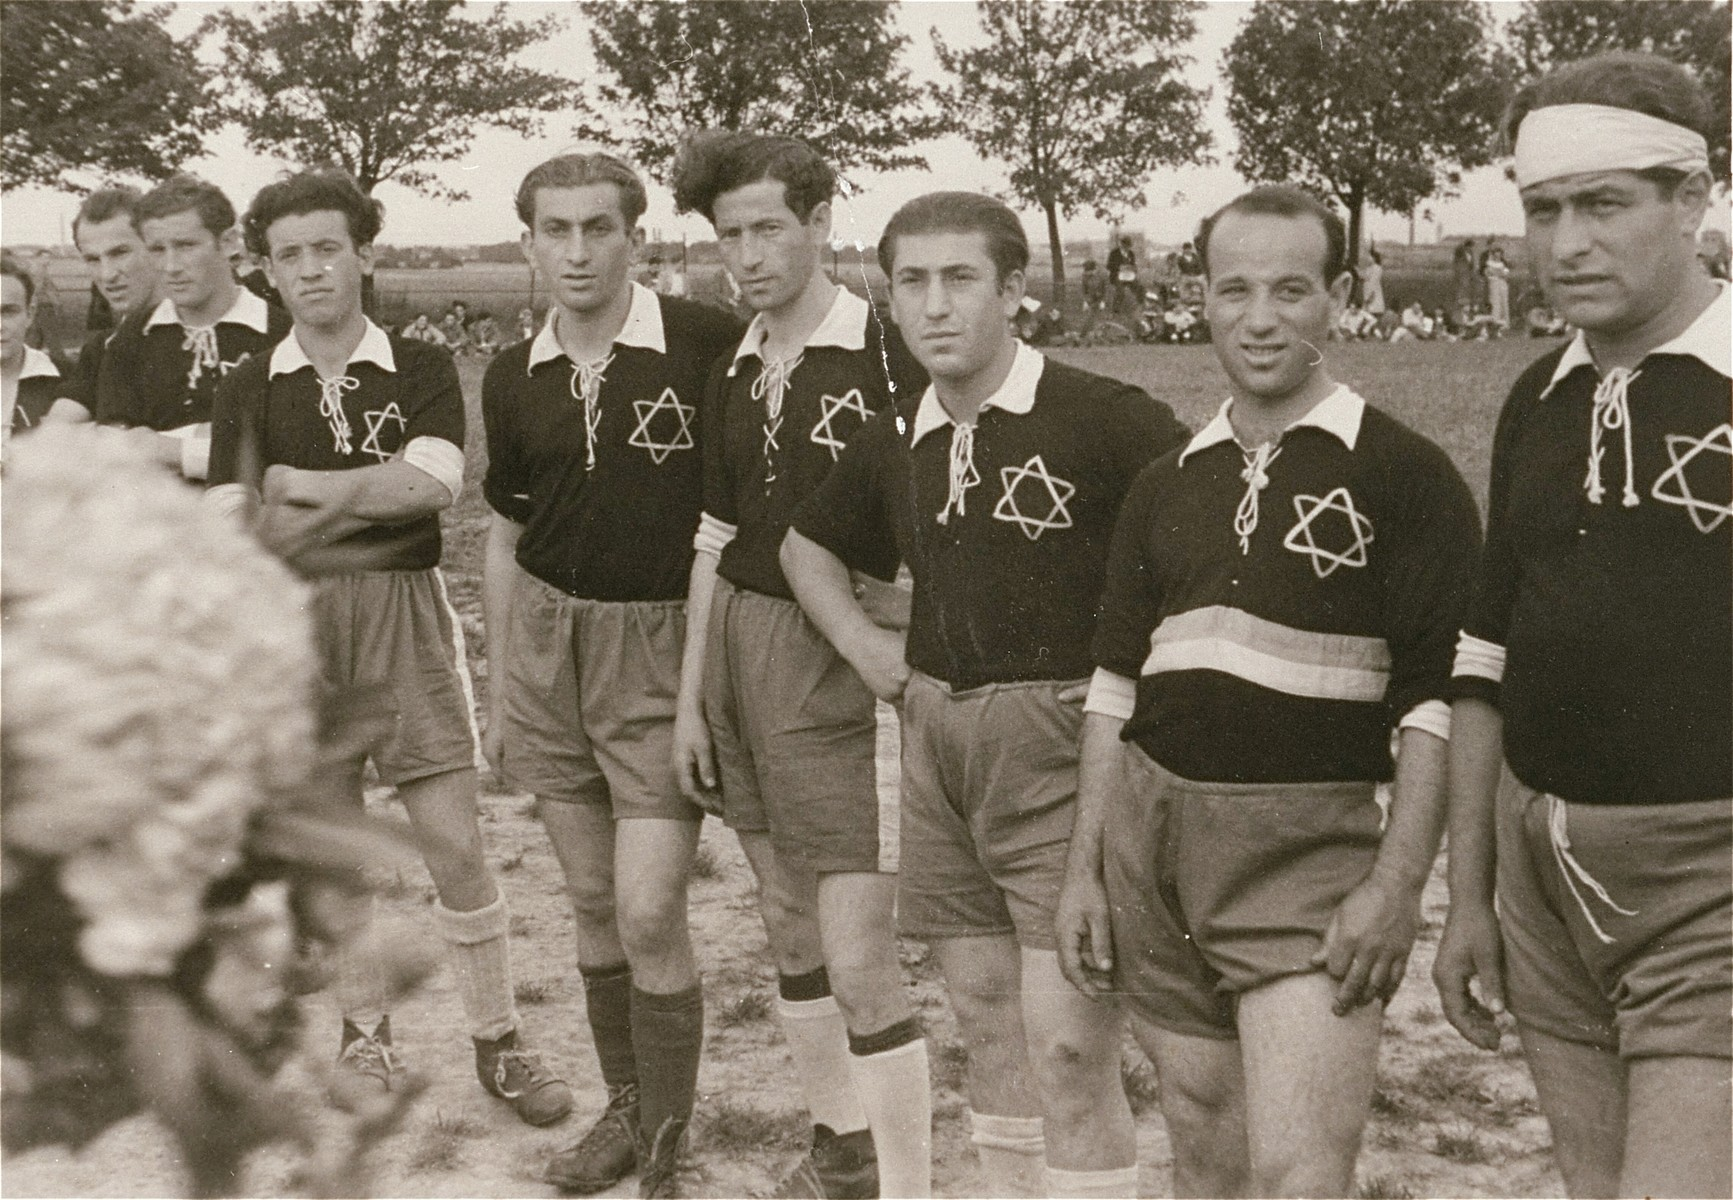 Group portrait of a Jewish DP soccer team during a sporting event at the Zeilsheim displaced persons camp.